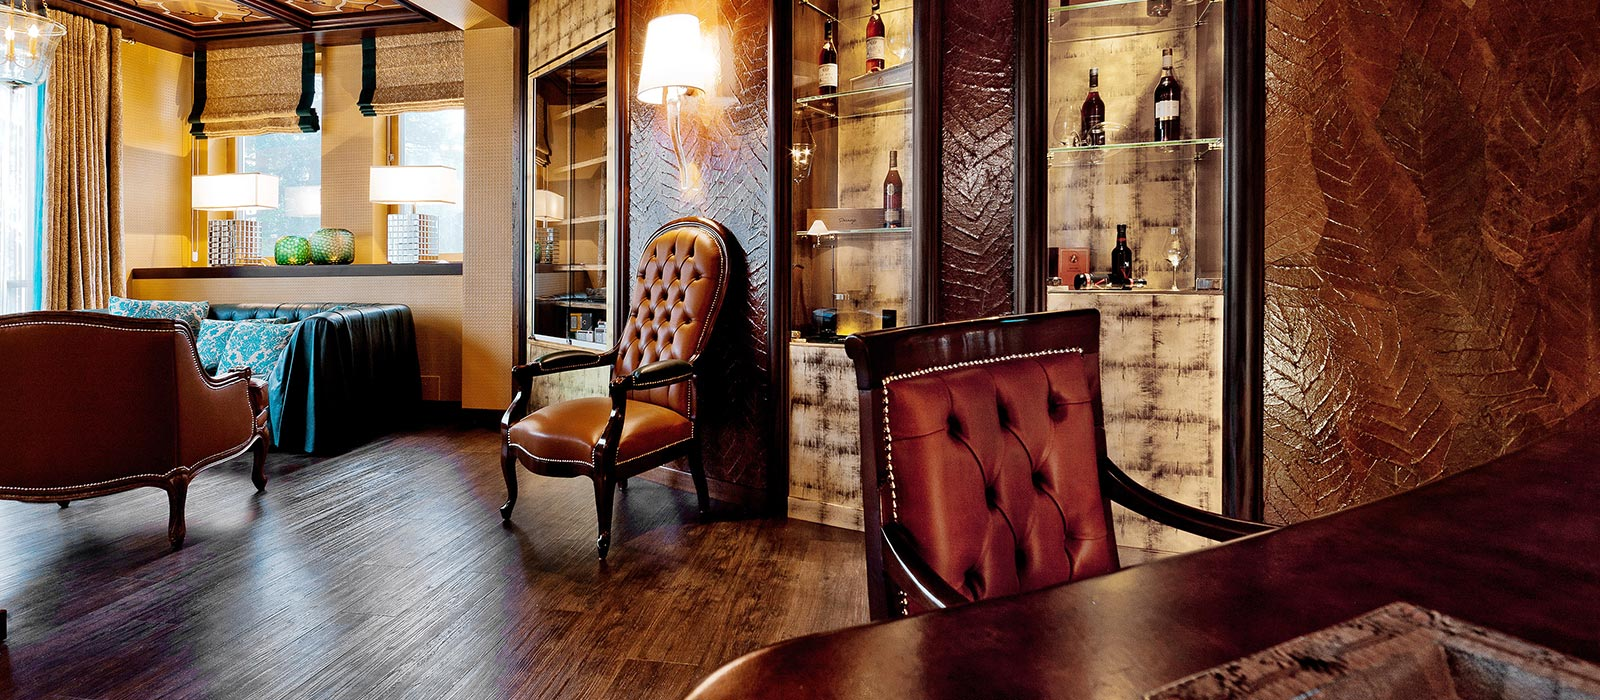 restaurants_cigar-lounge-arosa_01.jpg